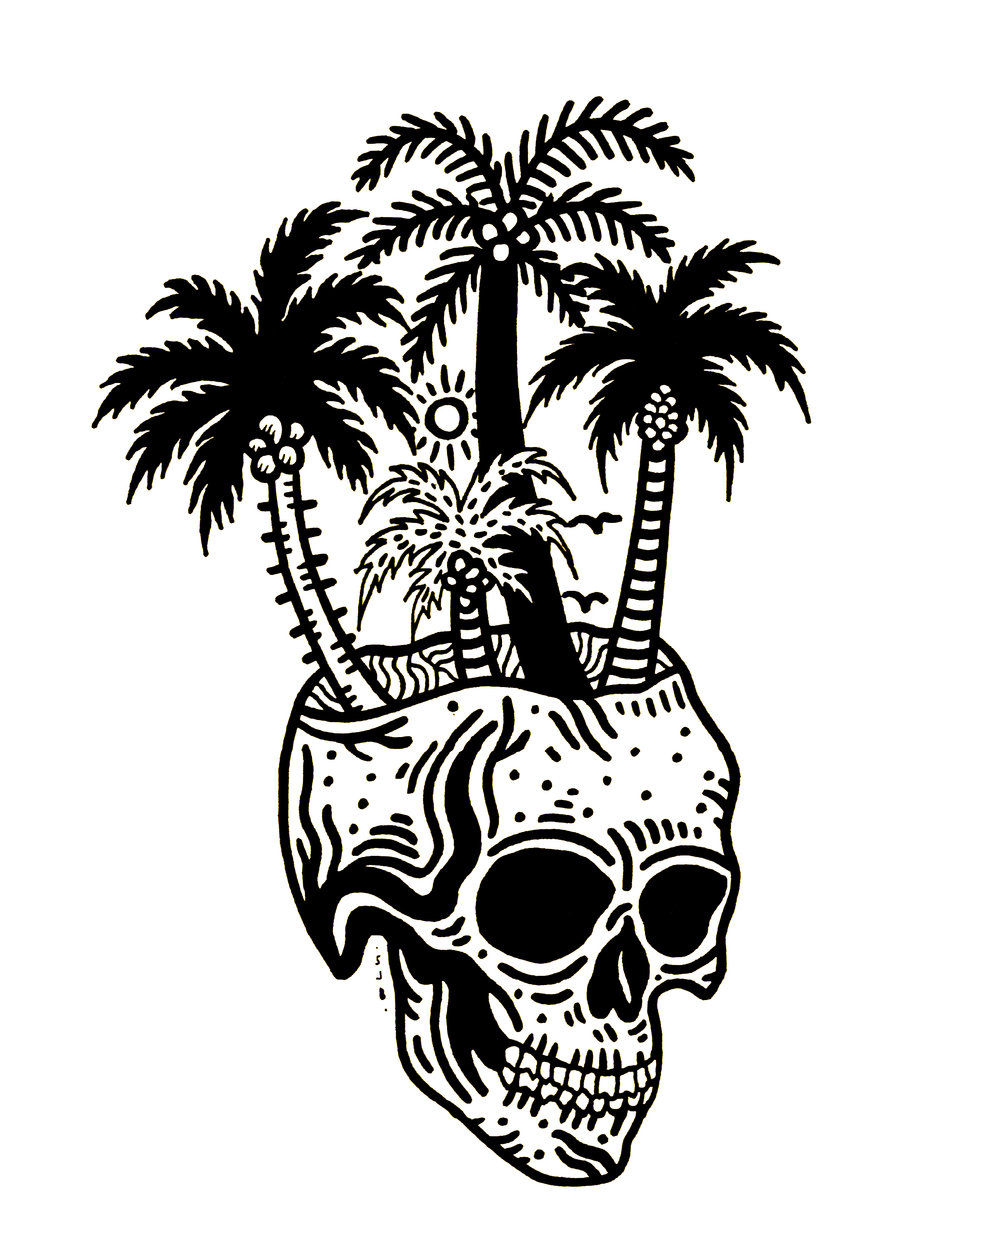 CATALYSTPALMSKULLZ.jpg